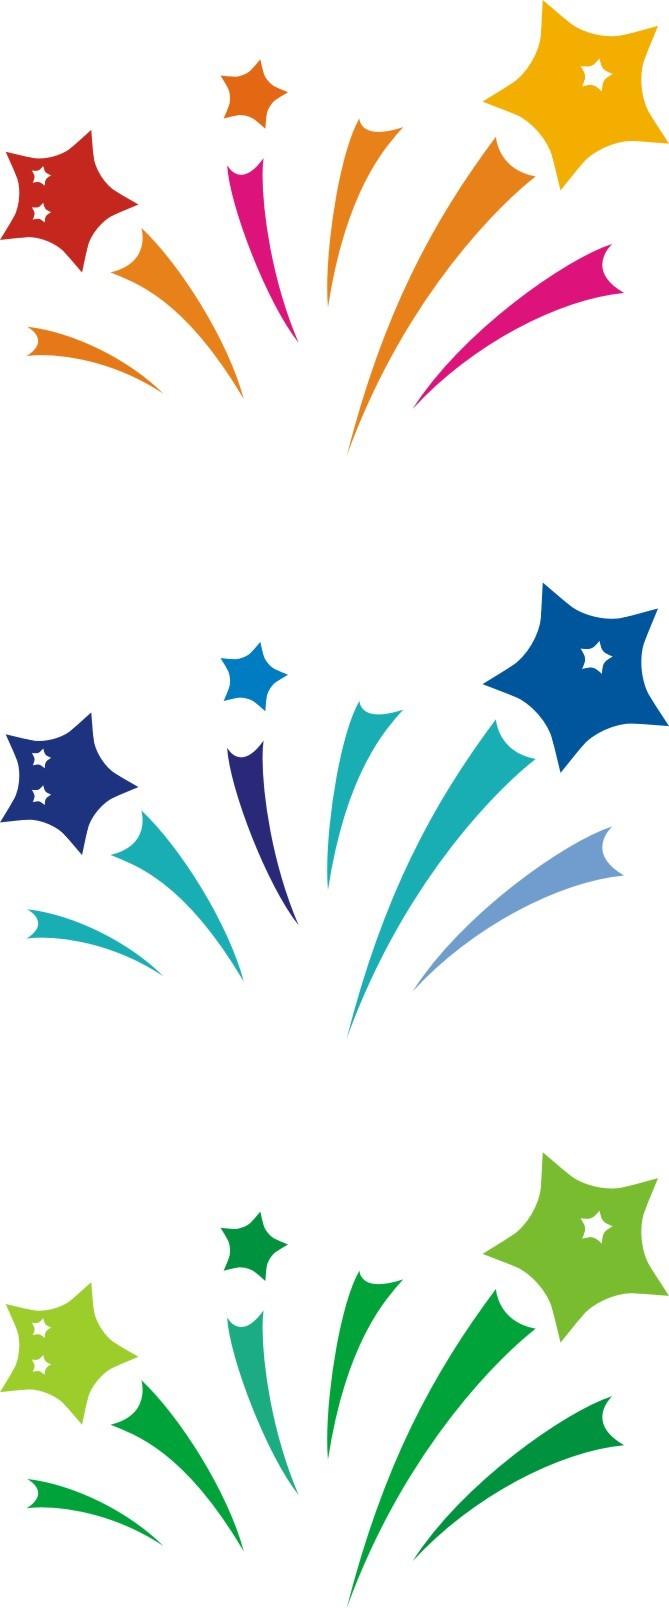 Shooting Star Clip Art Free - ClipArt Best